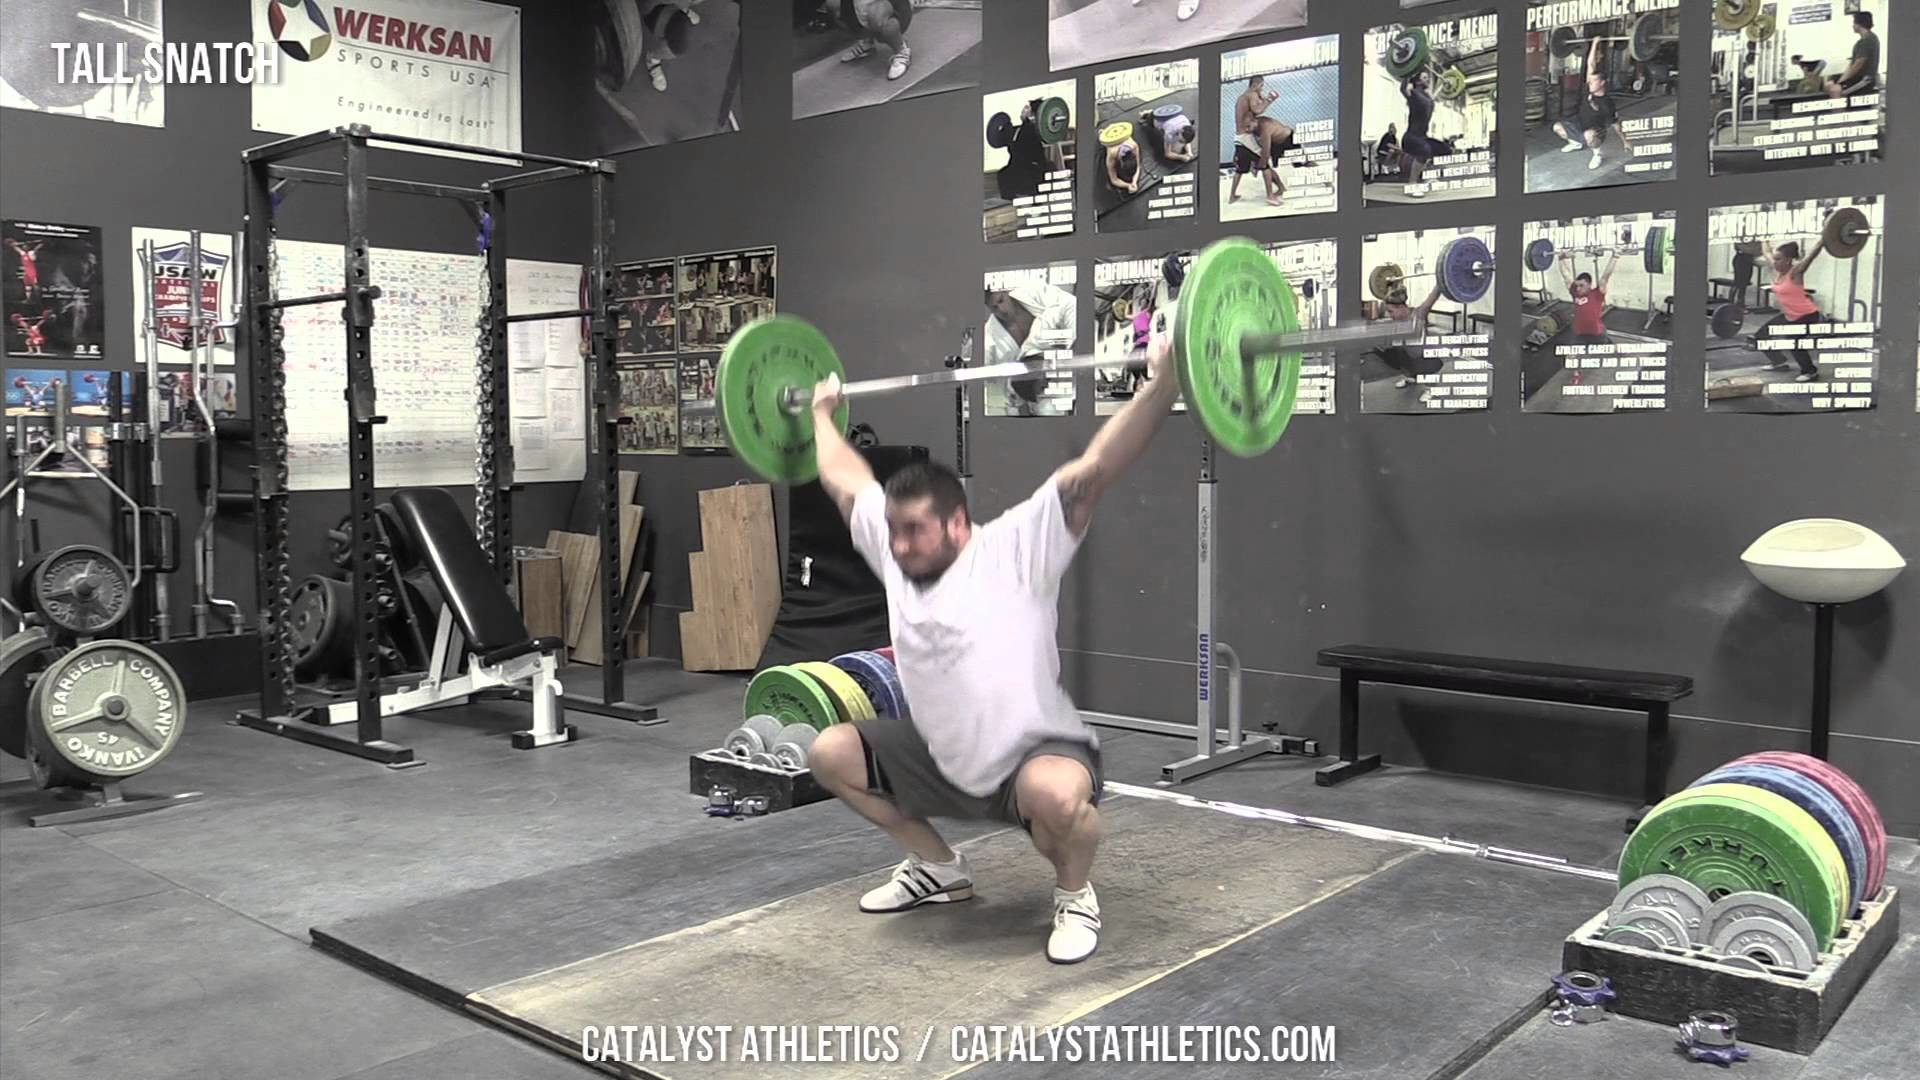 Tall Snatch – Olympic Weightlifting Exercise Library – Catalyst Athletics